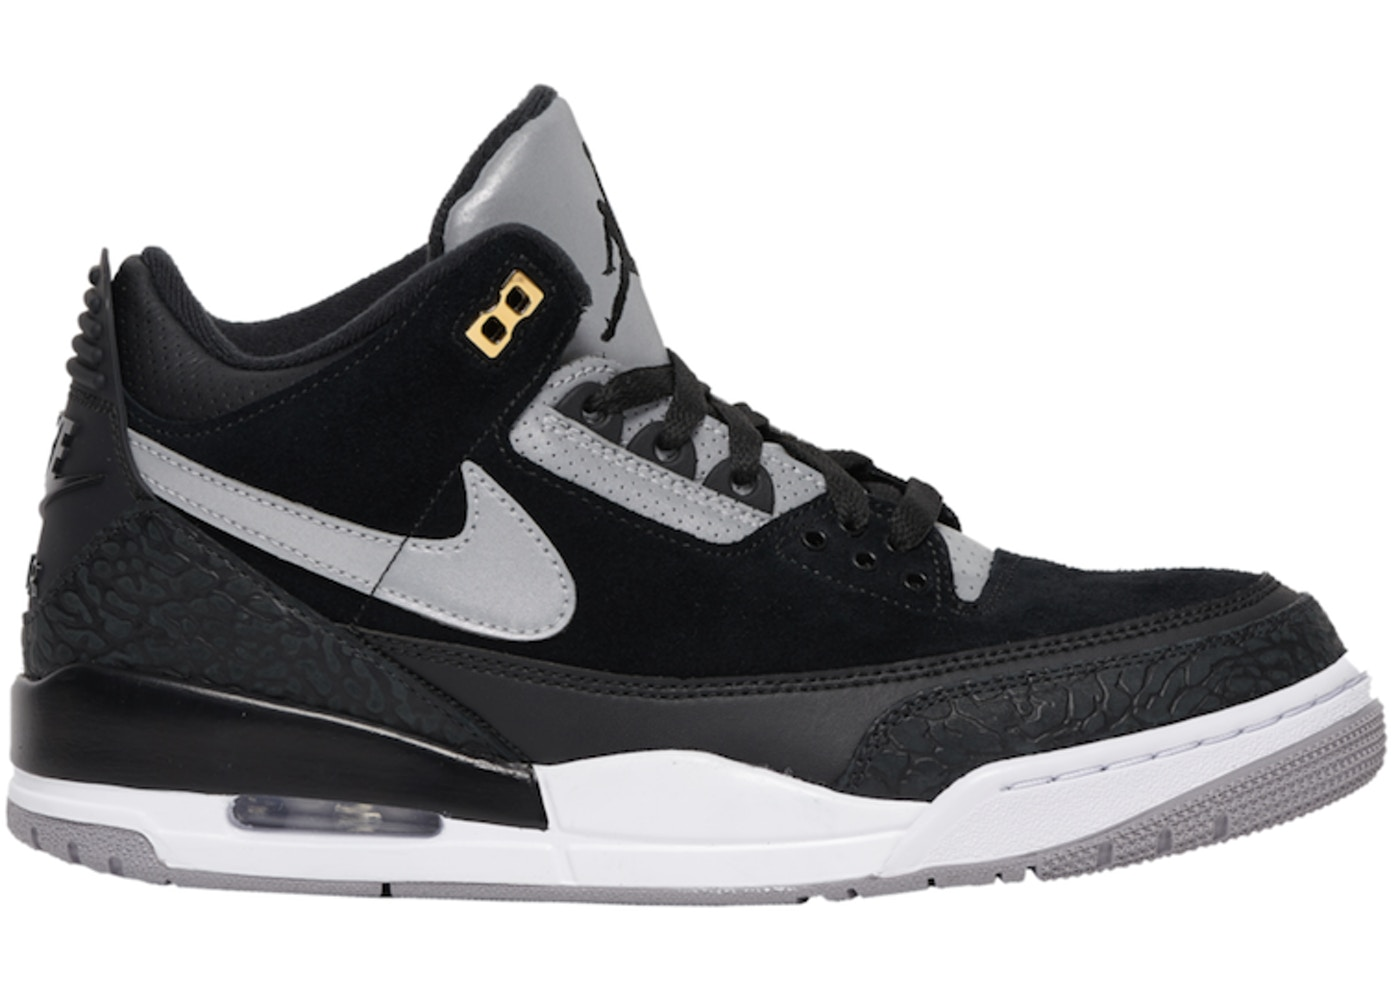 outlet store d0161 1ffe3 Buy Air Jordan 3 Shoes & Deadstock Sneakers